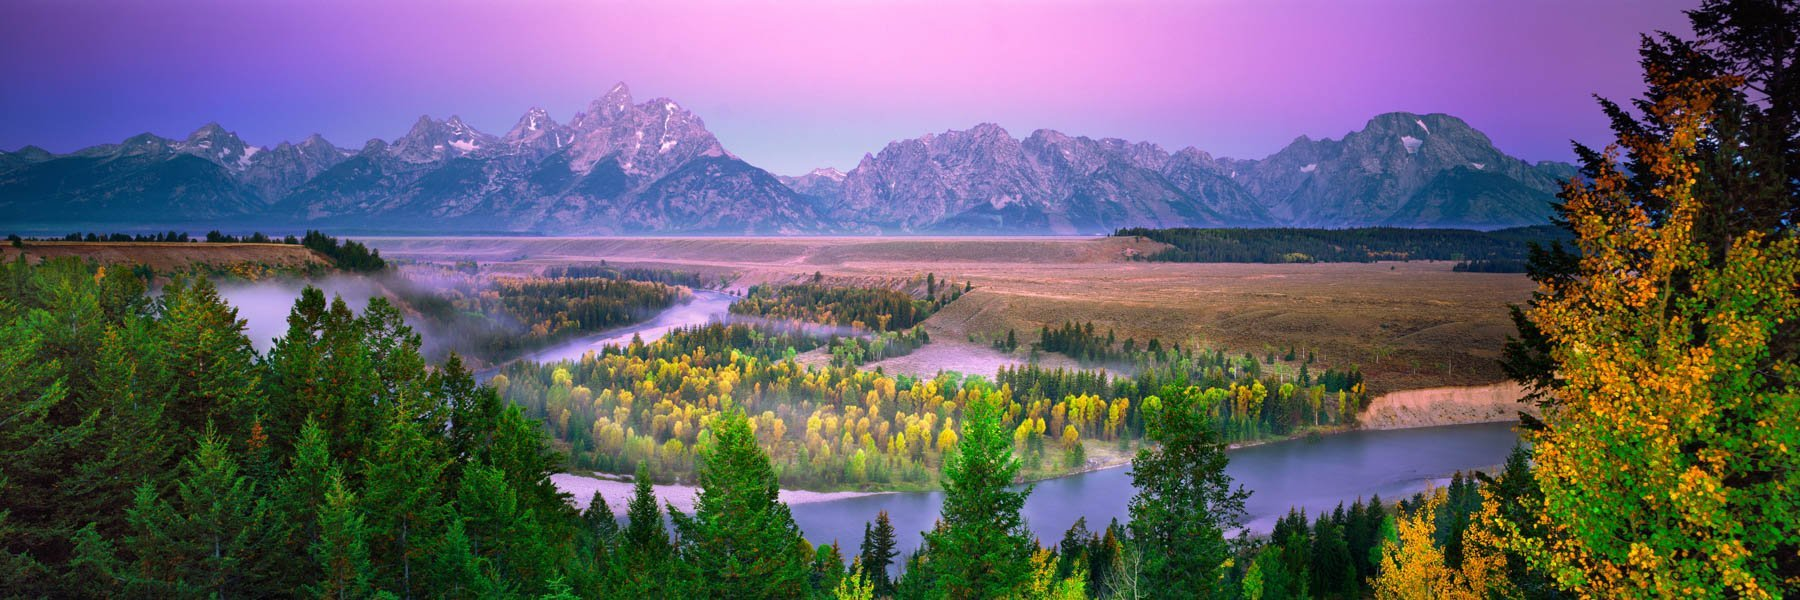 A tranquil, pastel sunrise over Snake River, Grant Teton National Park, Wyoming, USA.